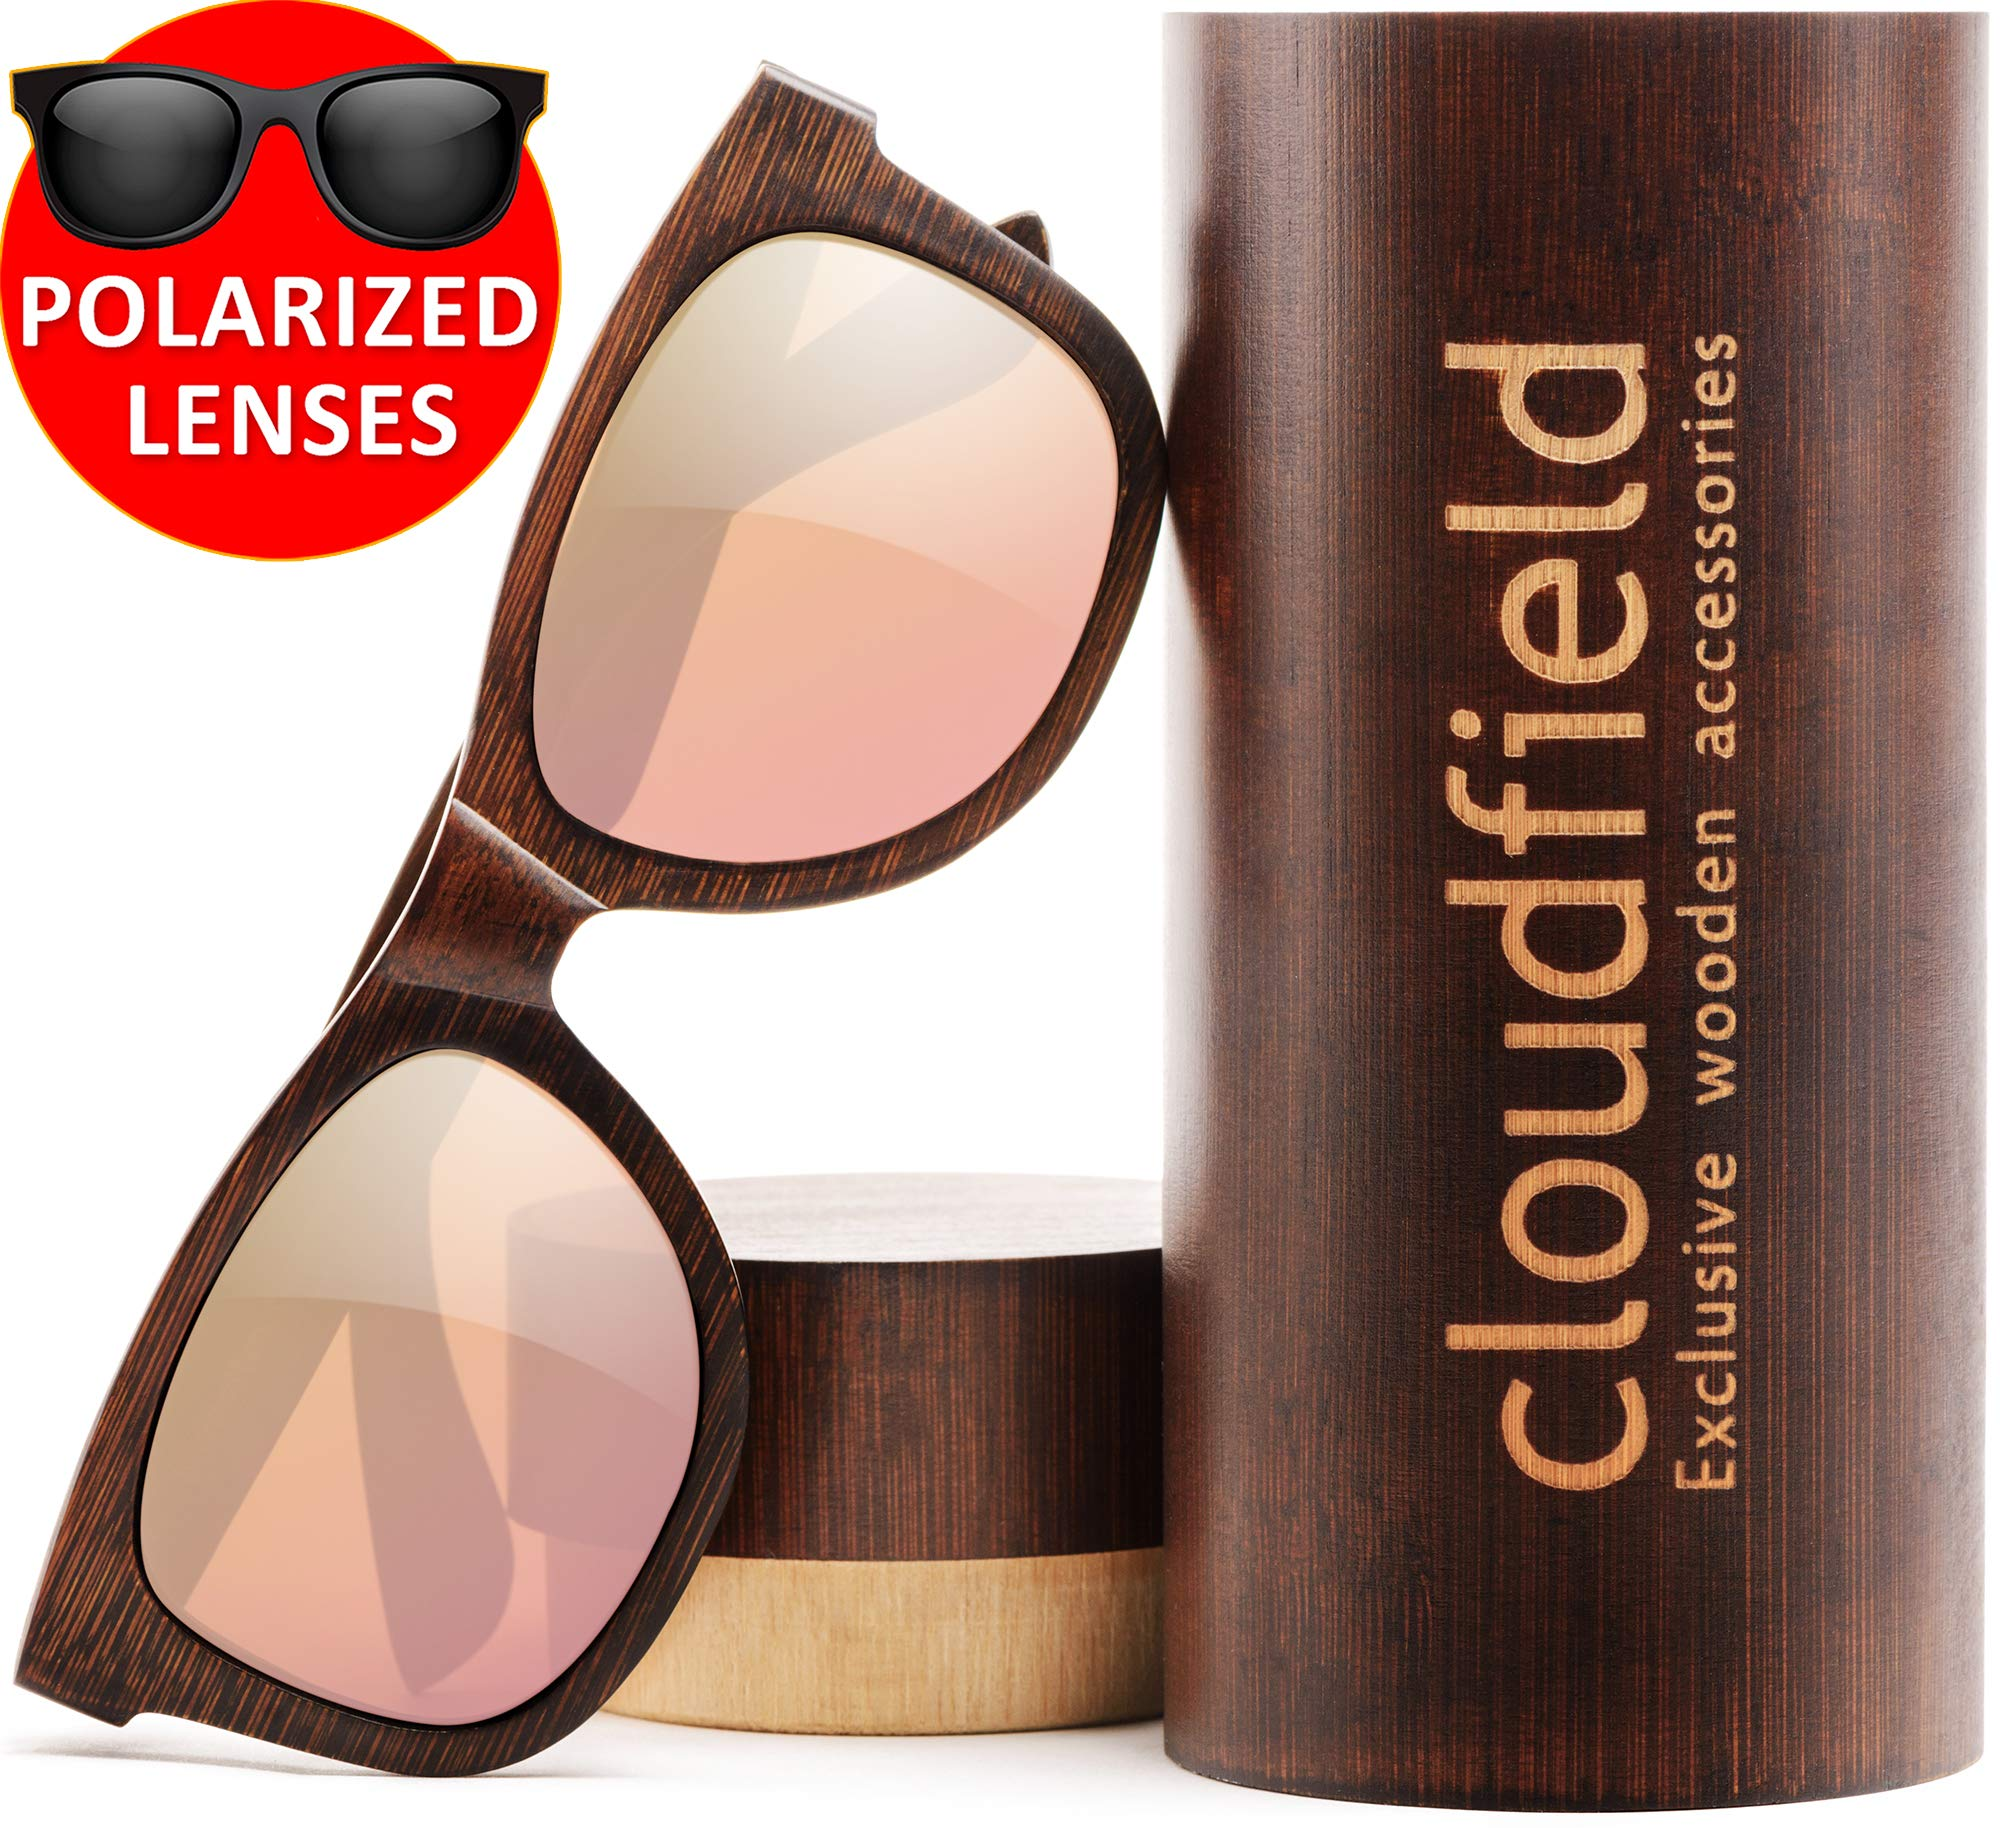 Wood Sunglasses Polarized for Men and Women by CLOUDFIELD - Wooden Wayfarer Style - 100% UV Protection - Premium Build Quality - Bamboo Wooden Frame - Perfect Gift by cloudfield